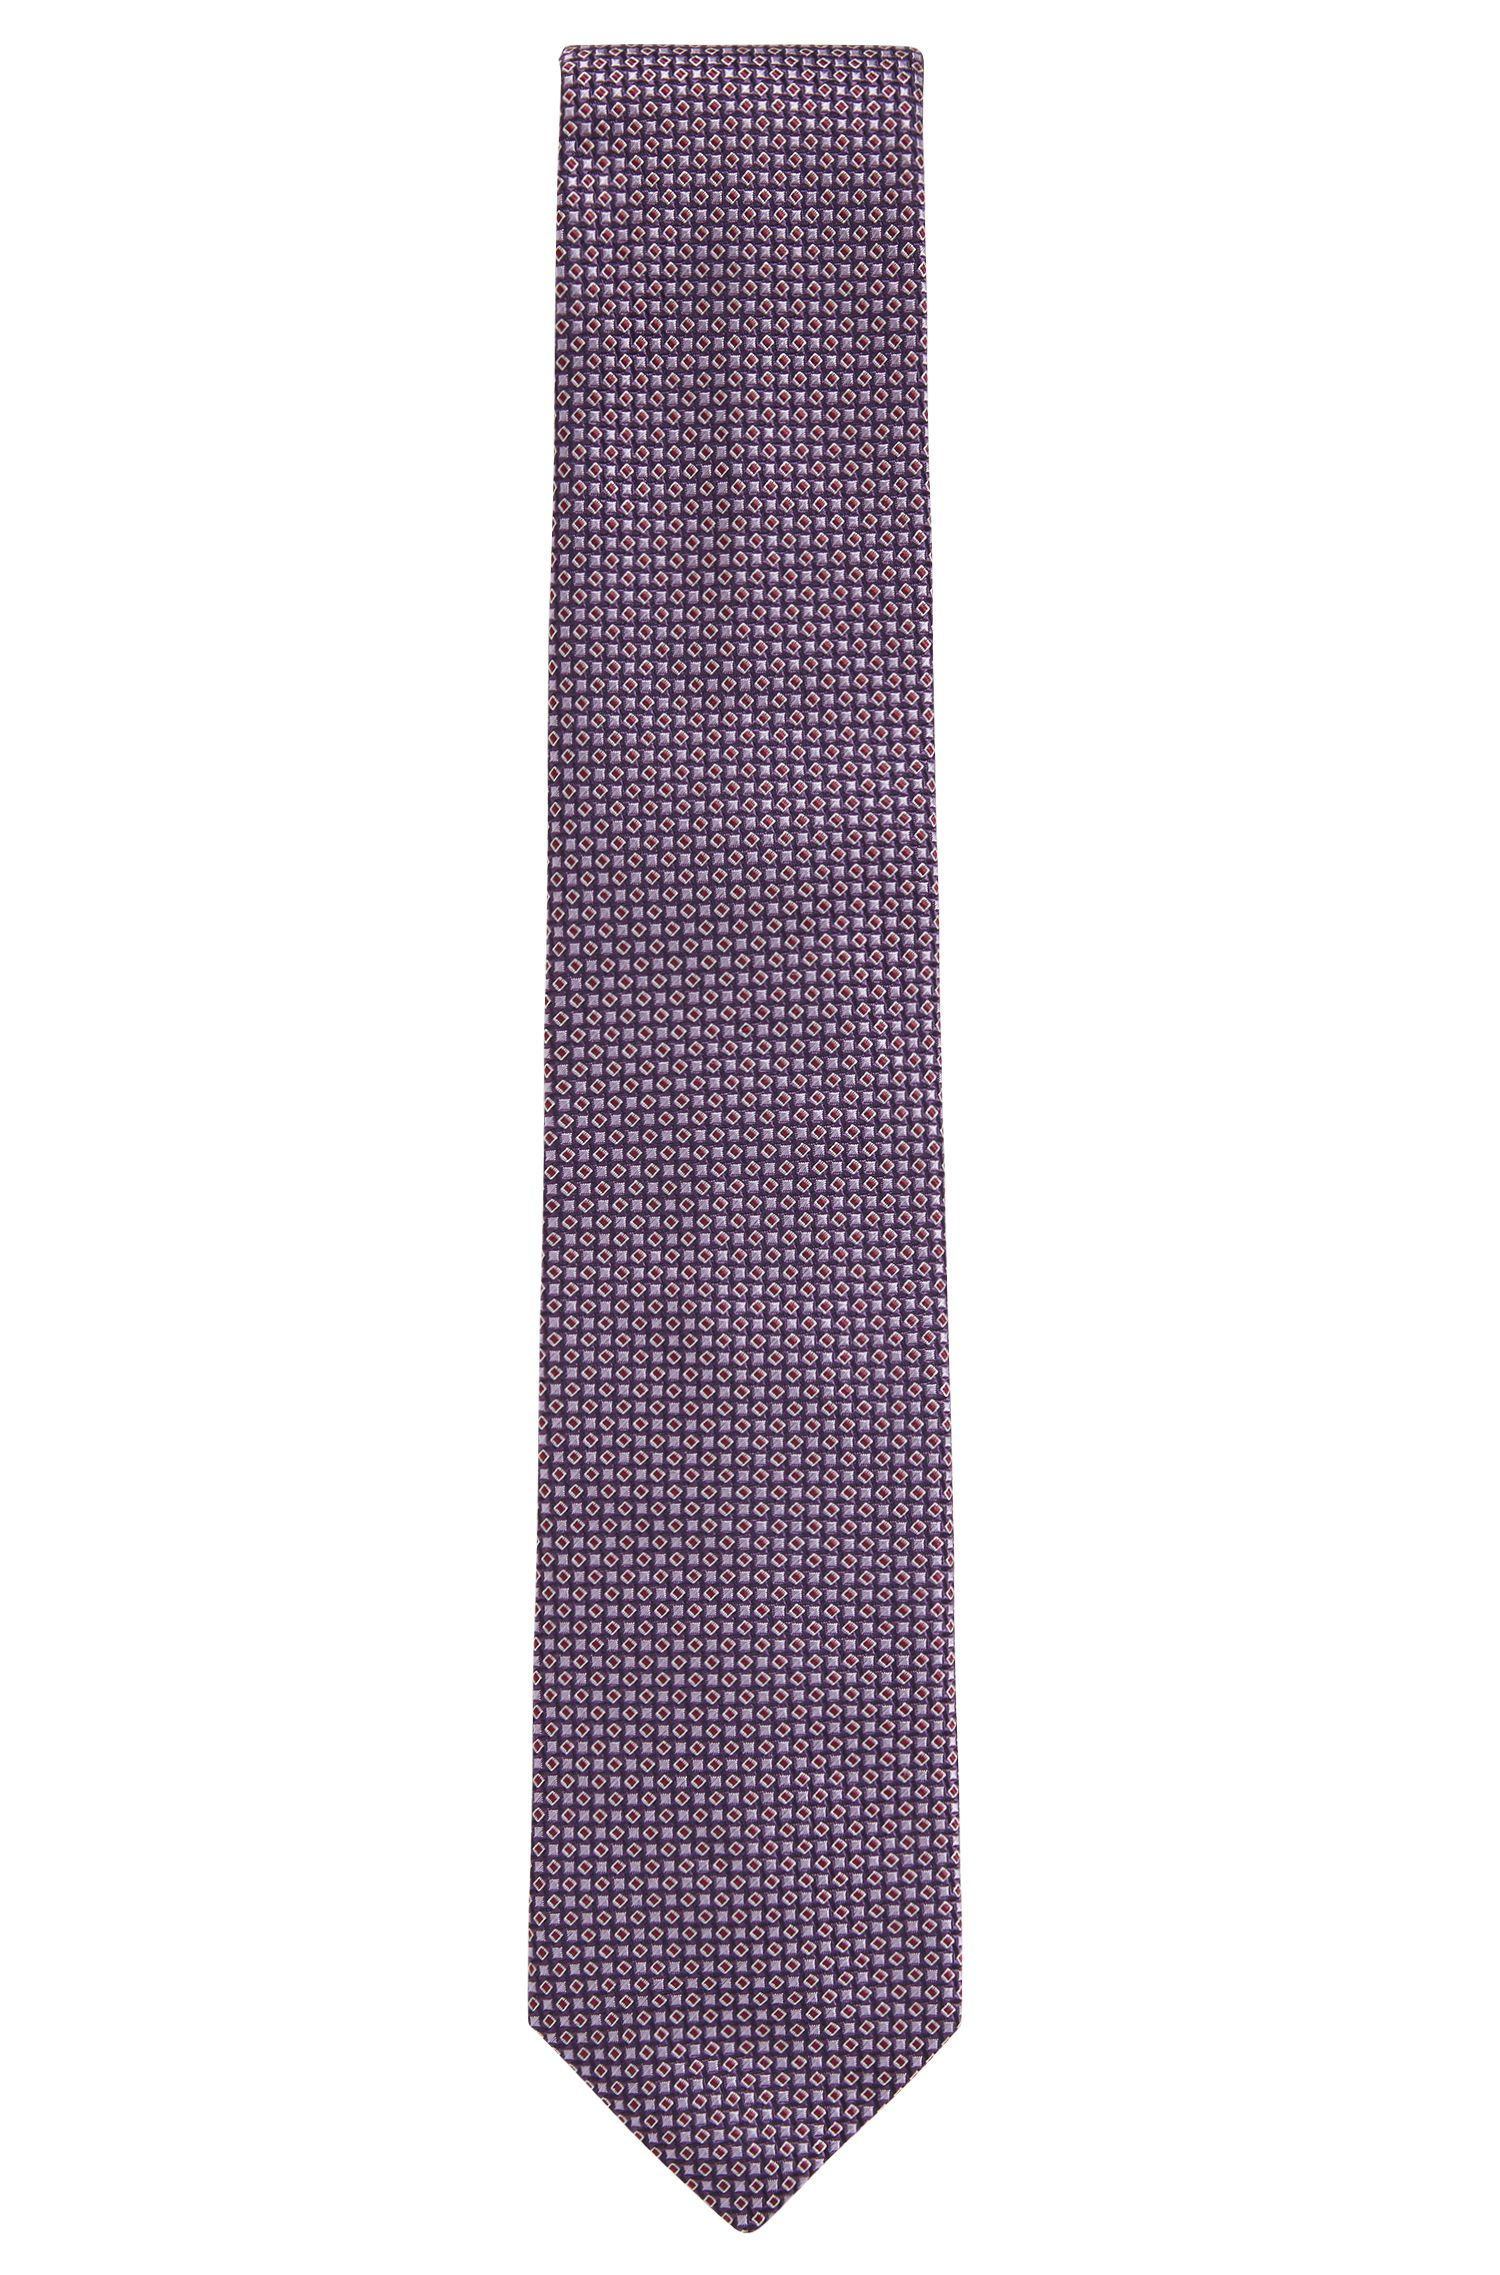 Italian-made patterned tie in silk jacquard